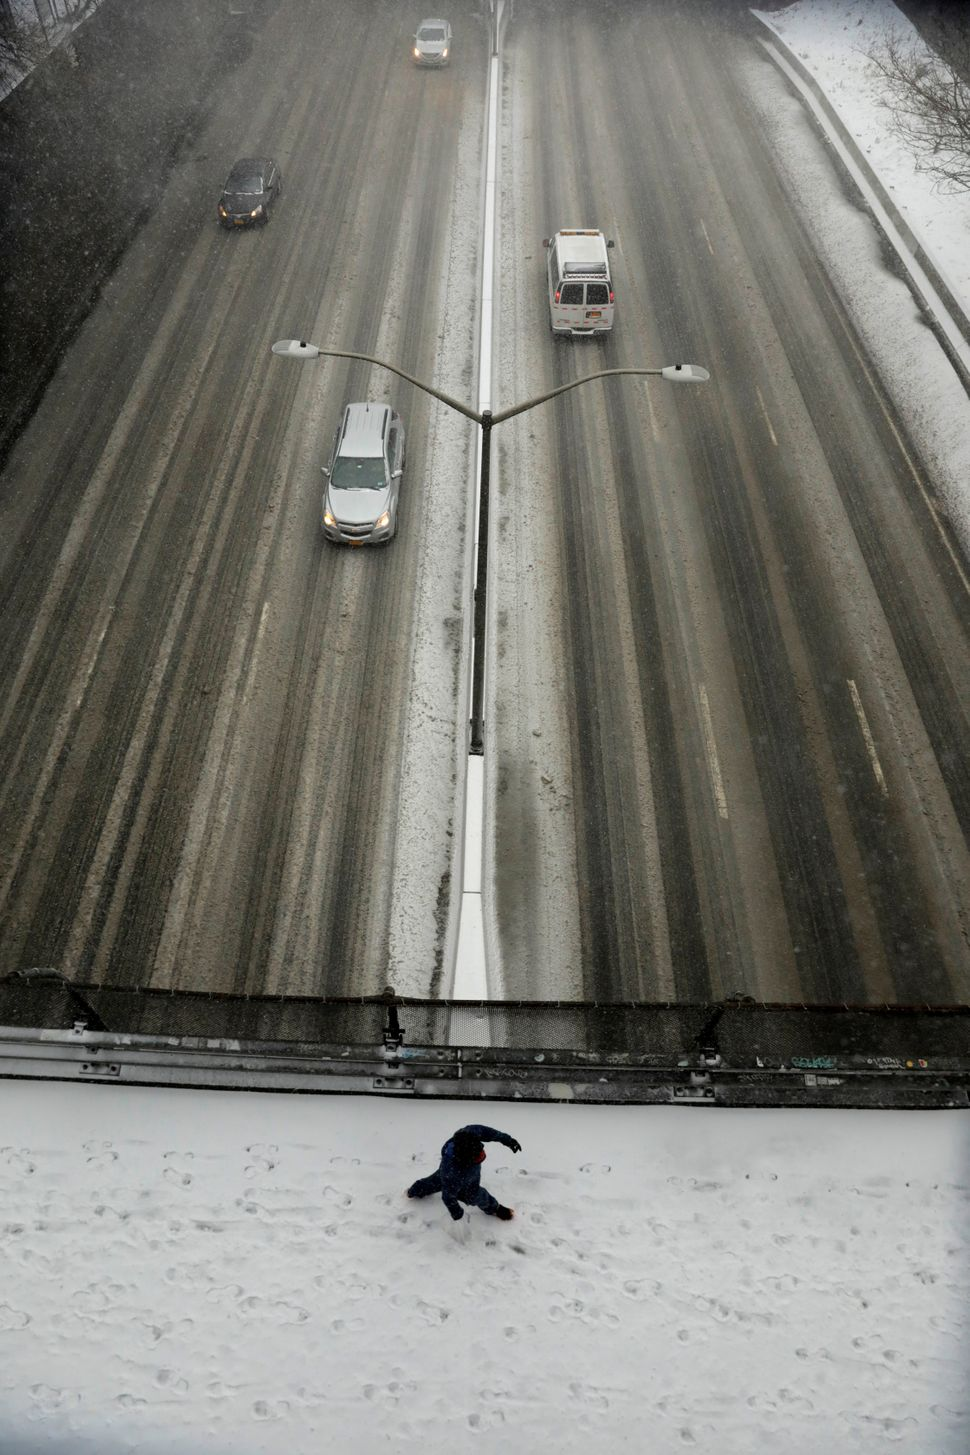 A man walks on a snow-covered bridge, across a highway, during a snowstorm in Brooklyn in New York City on Jan. 4, 2018.